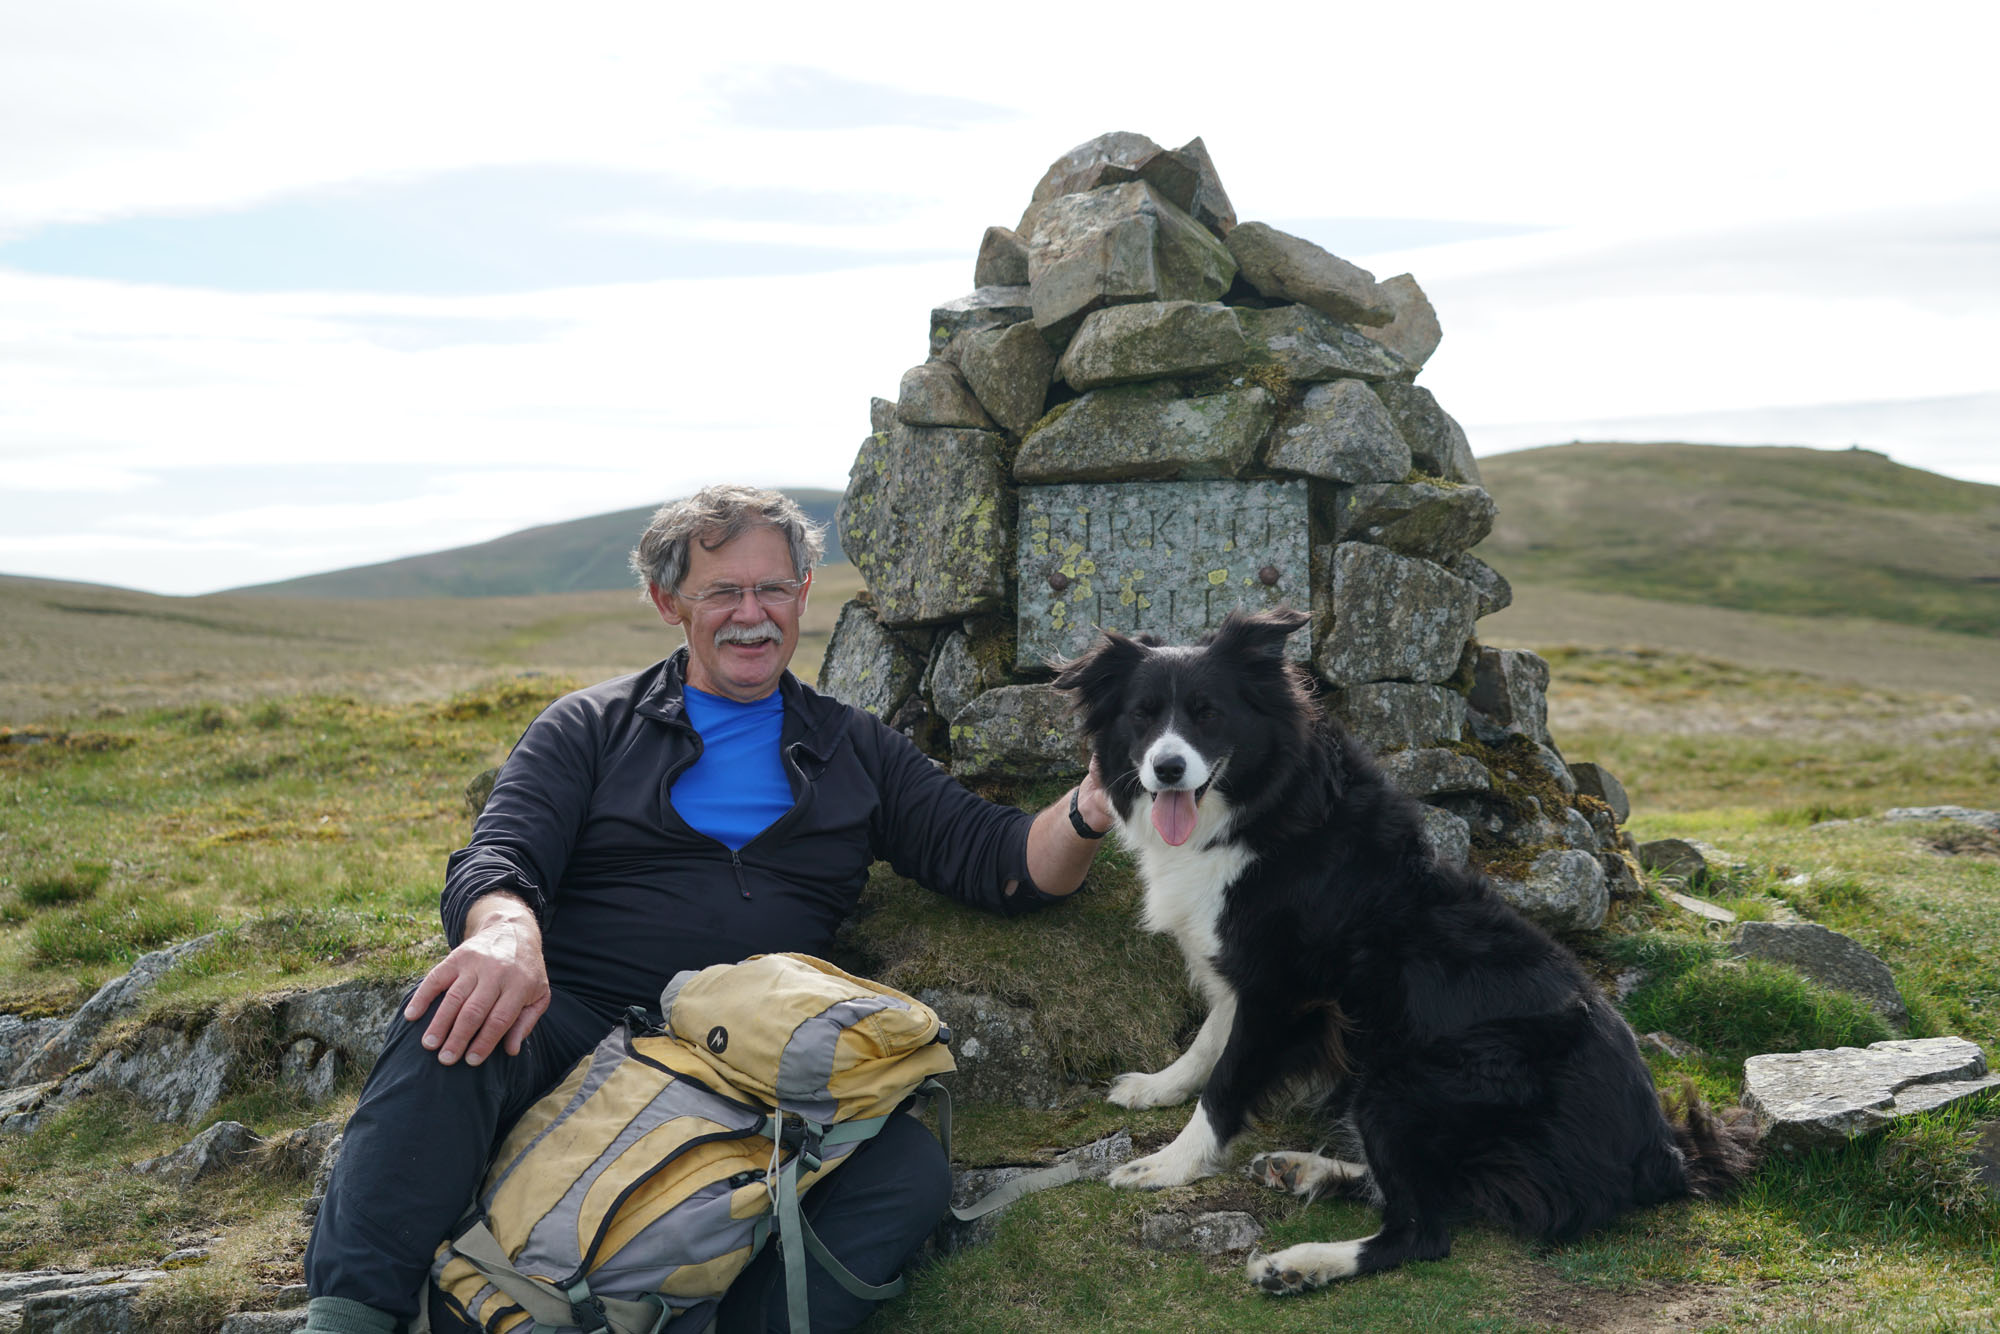 BILL BIRKETT PUBLISHING WAS FOUNDED IN 2009 AND IS THE LEADING PUBLISHER OF LAKELAND WALKS GUIDEBOOKS